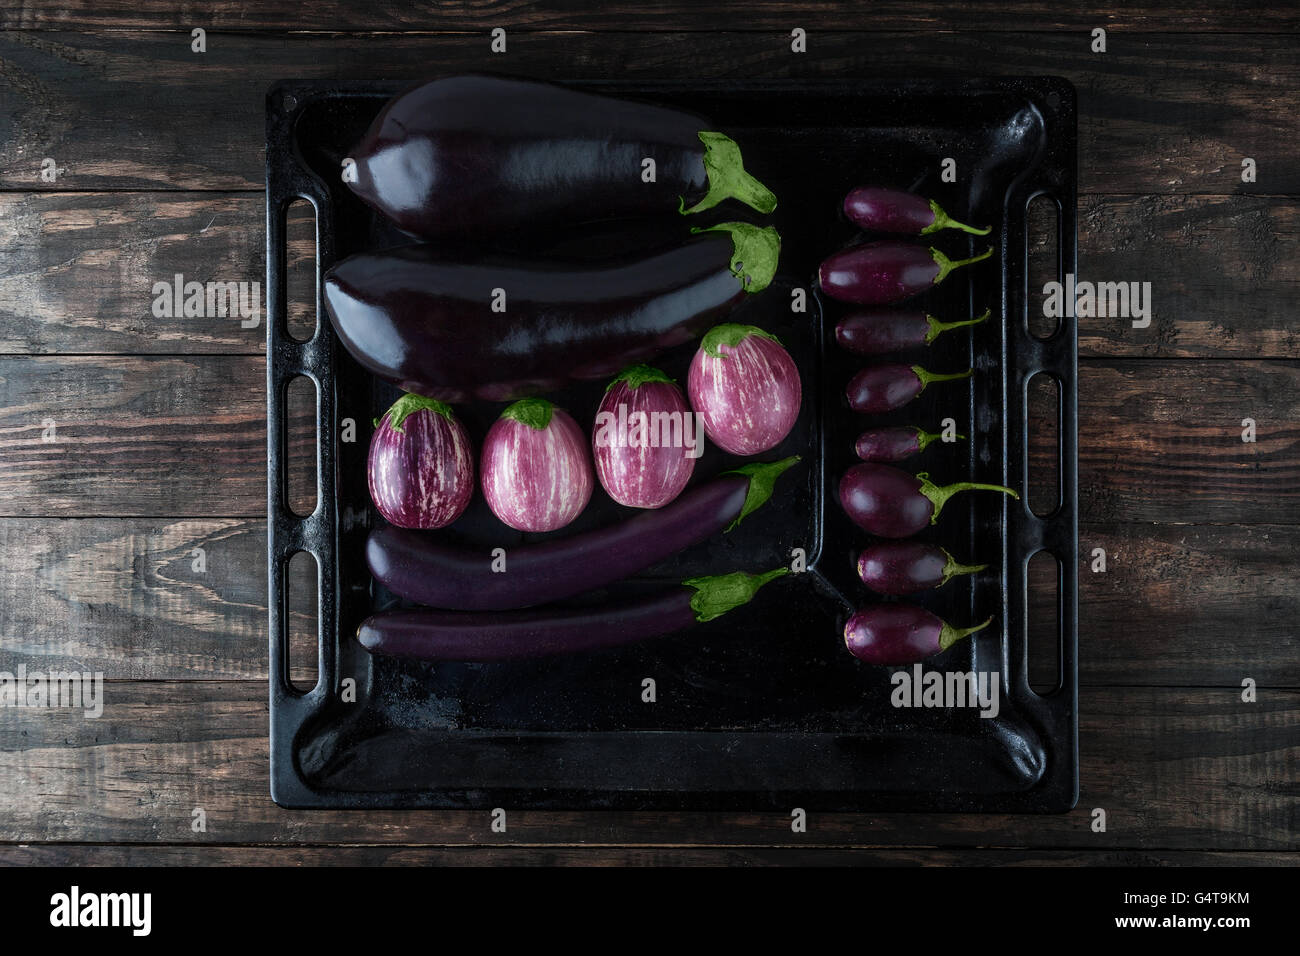 Eggplant varieties arranged on rustic baking tray. Top view with copy space - Stock Image